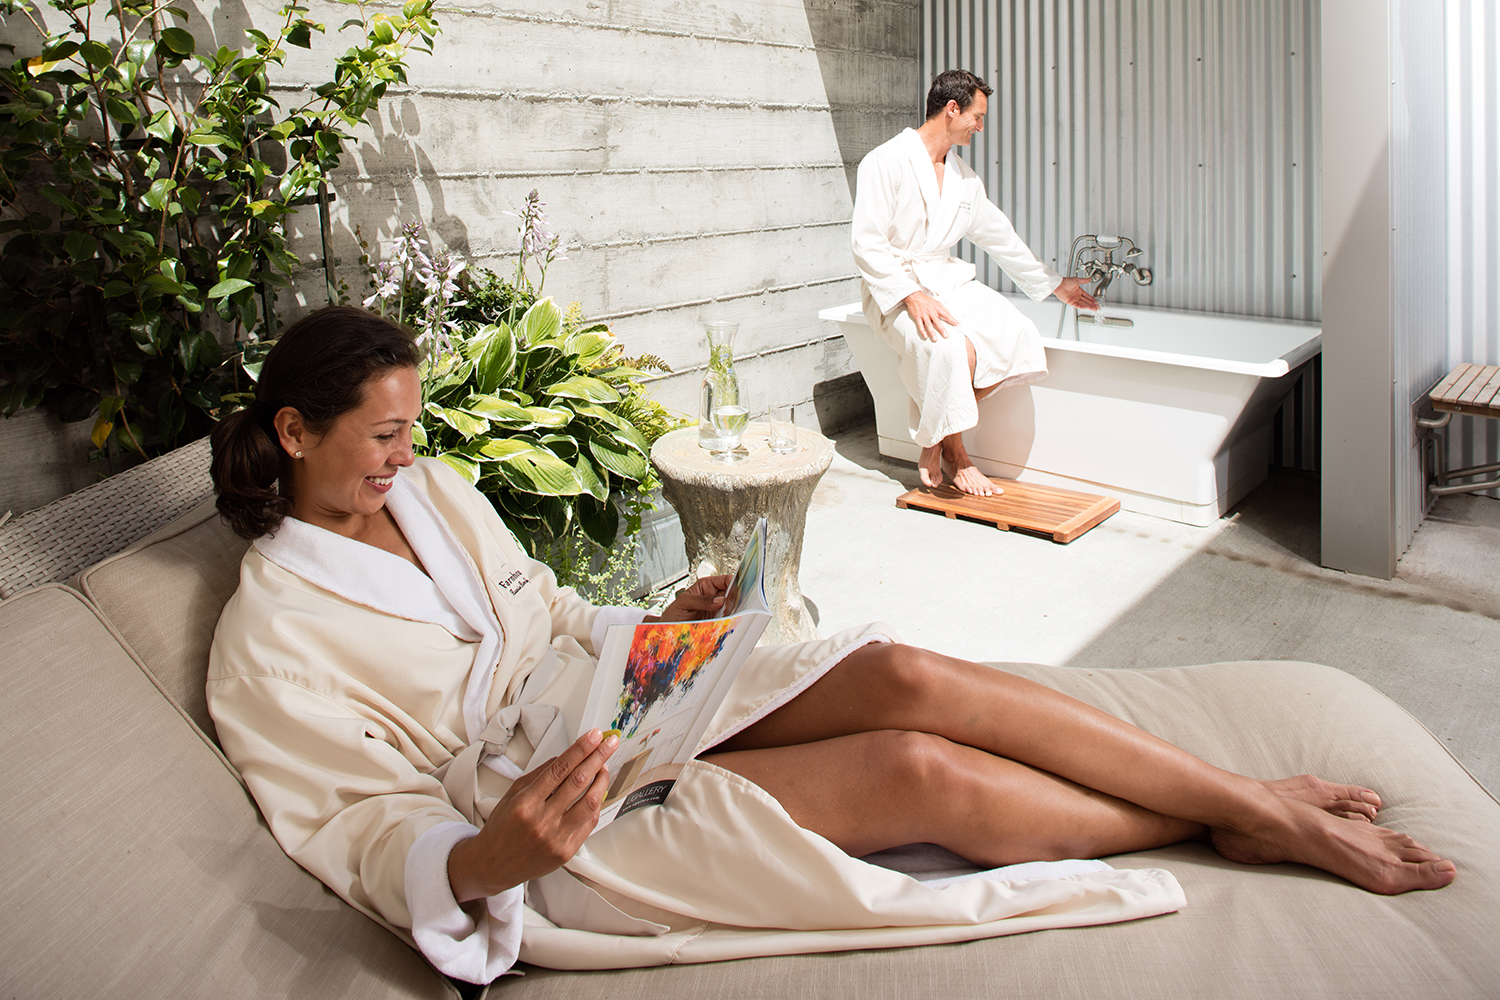 Guests can also enjoy an outdoor bath on the private couple's room patio.